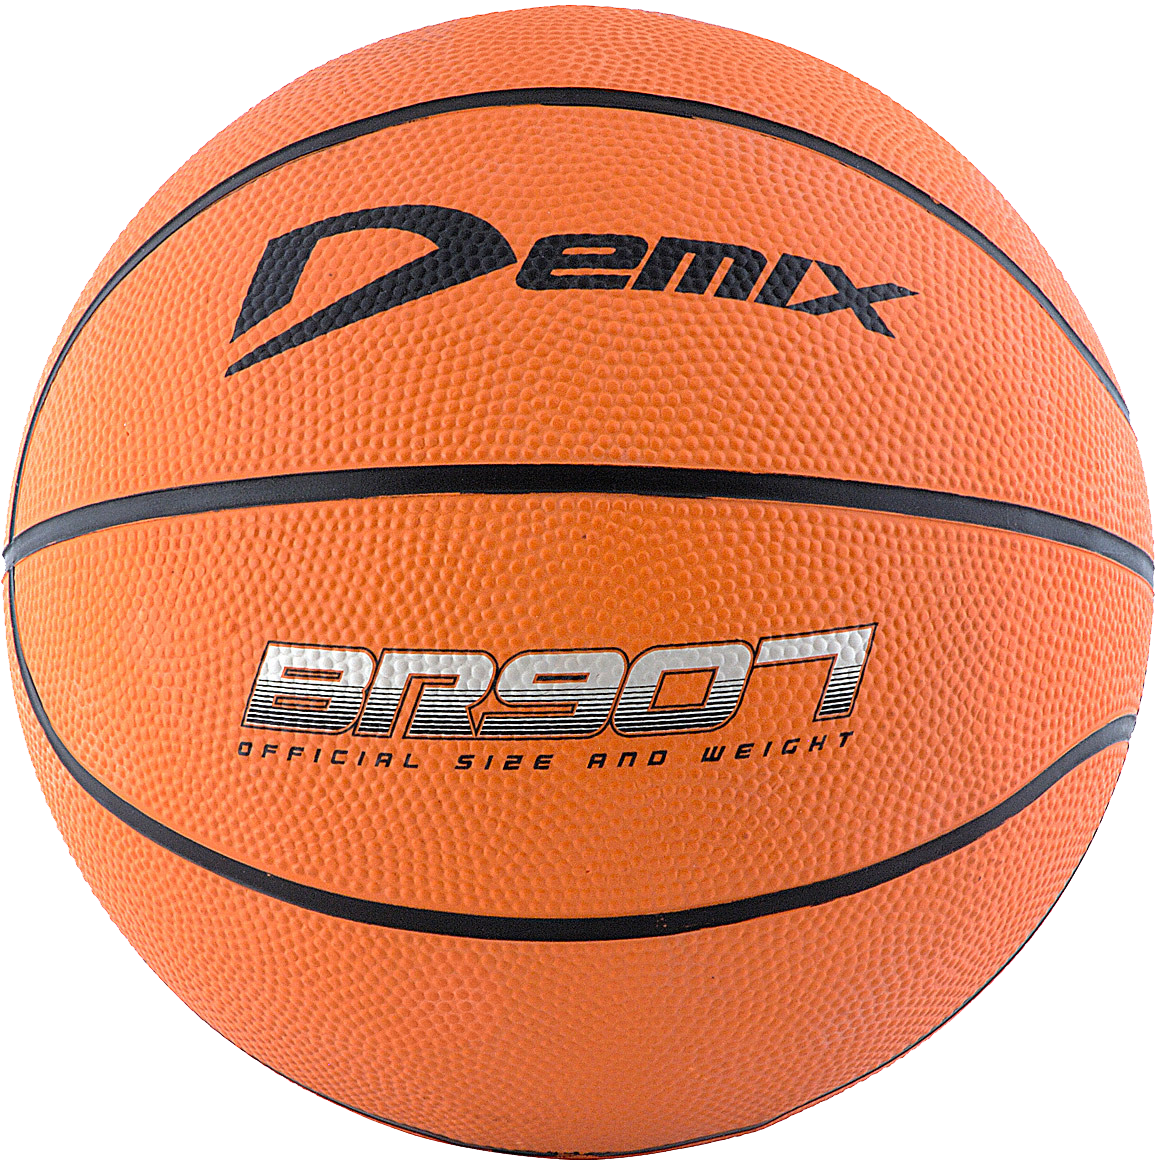 Ball png. Basketball images free download